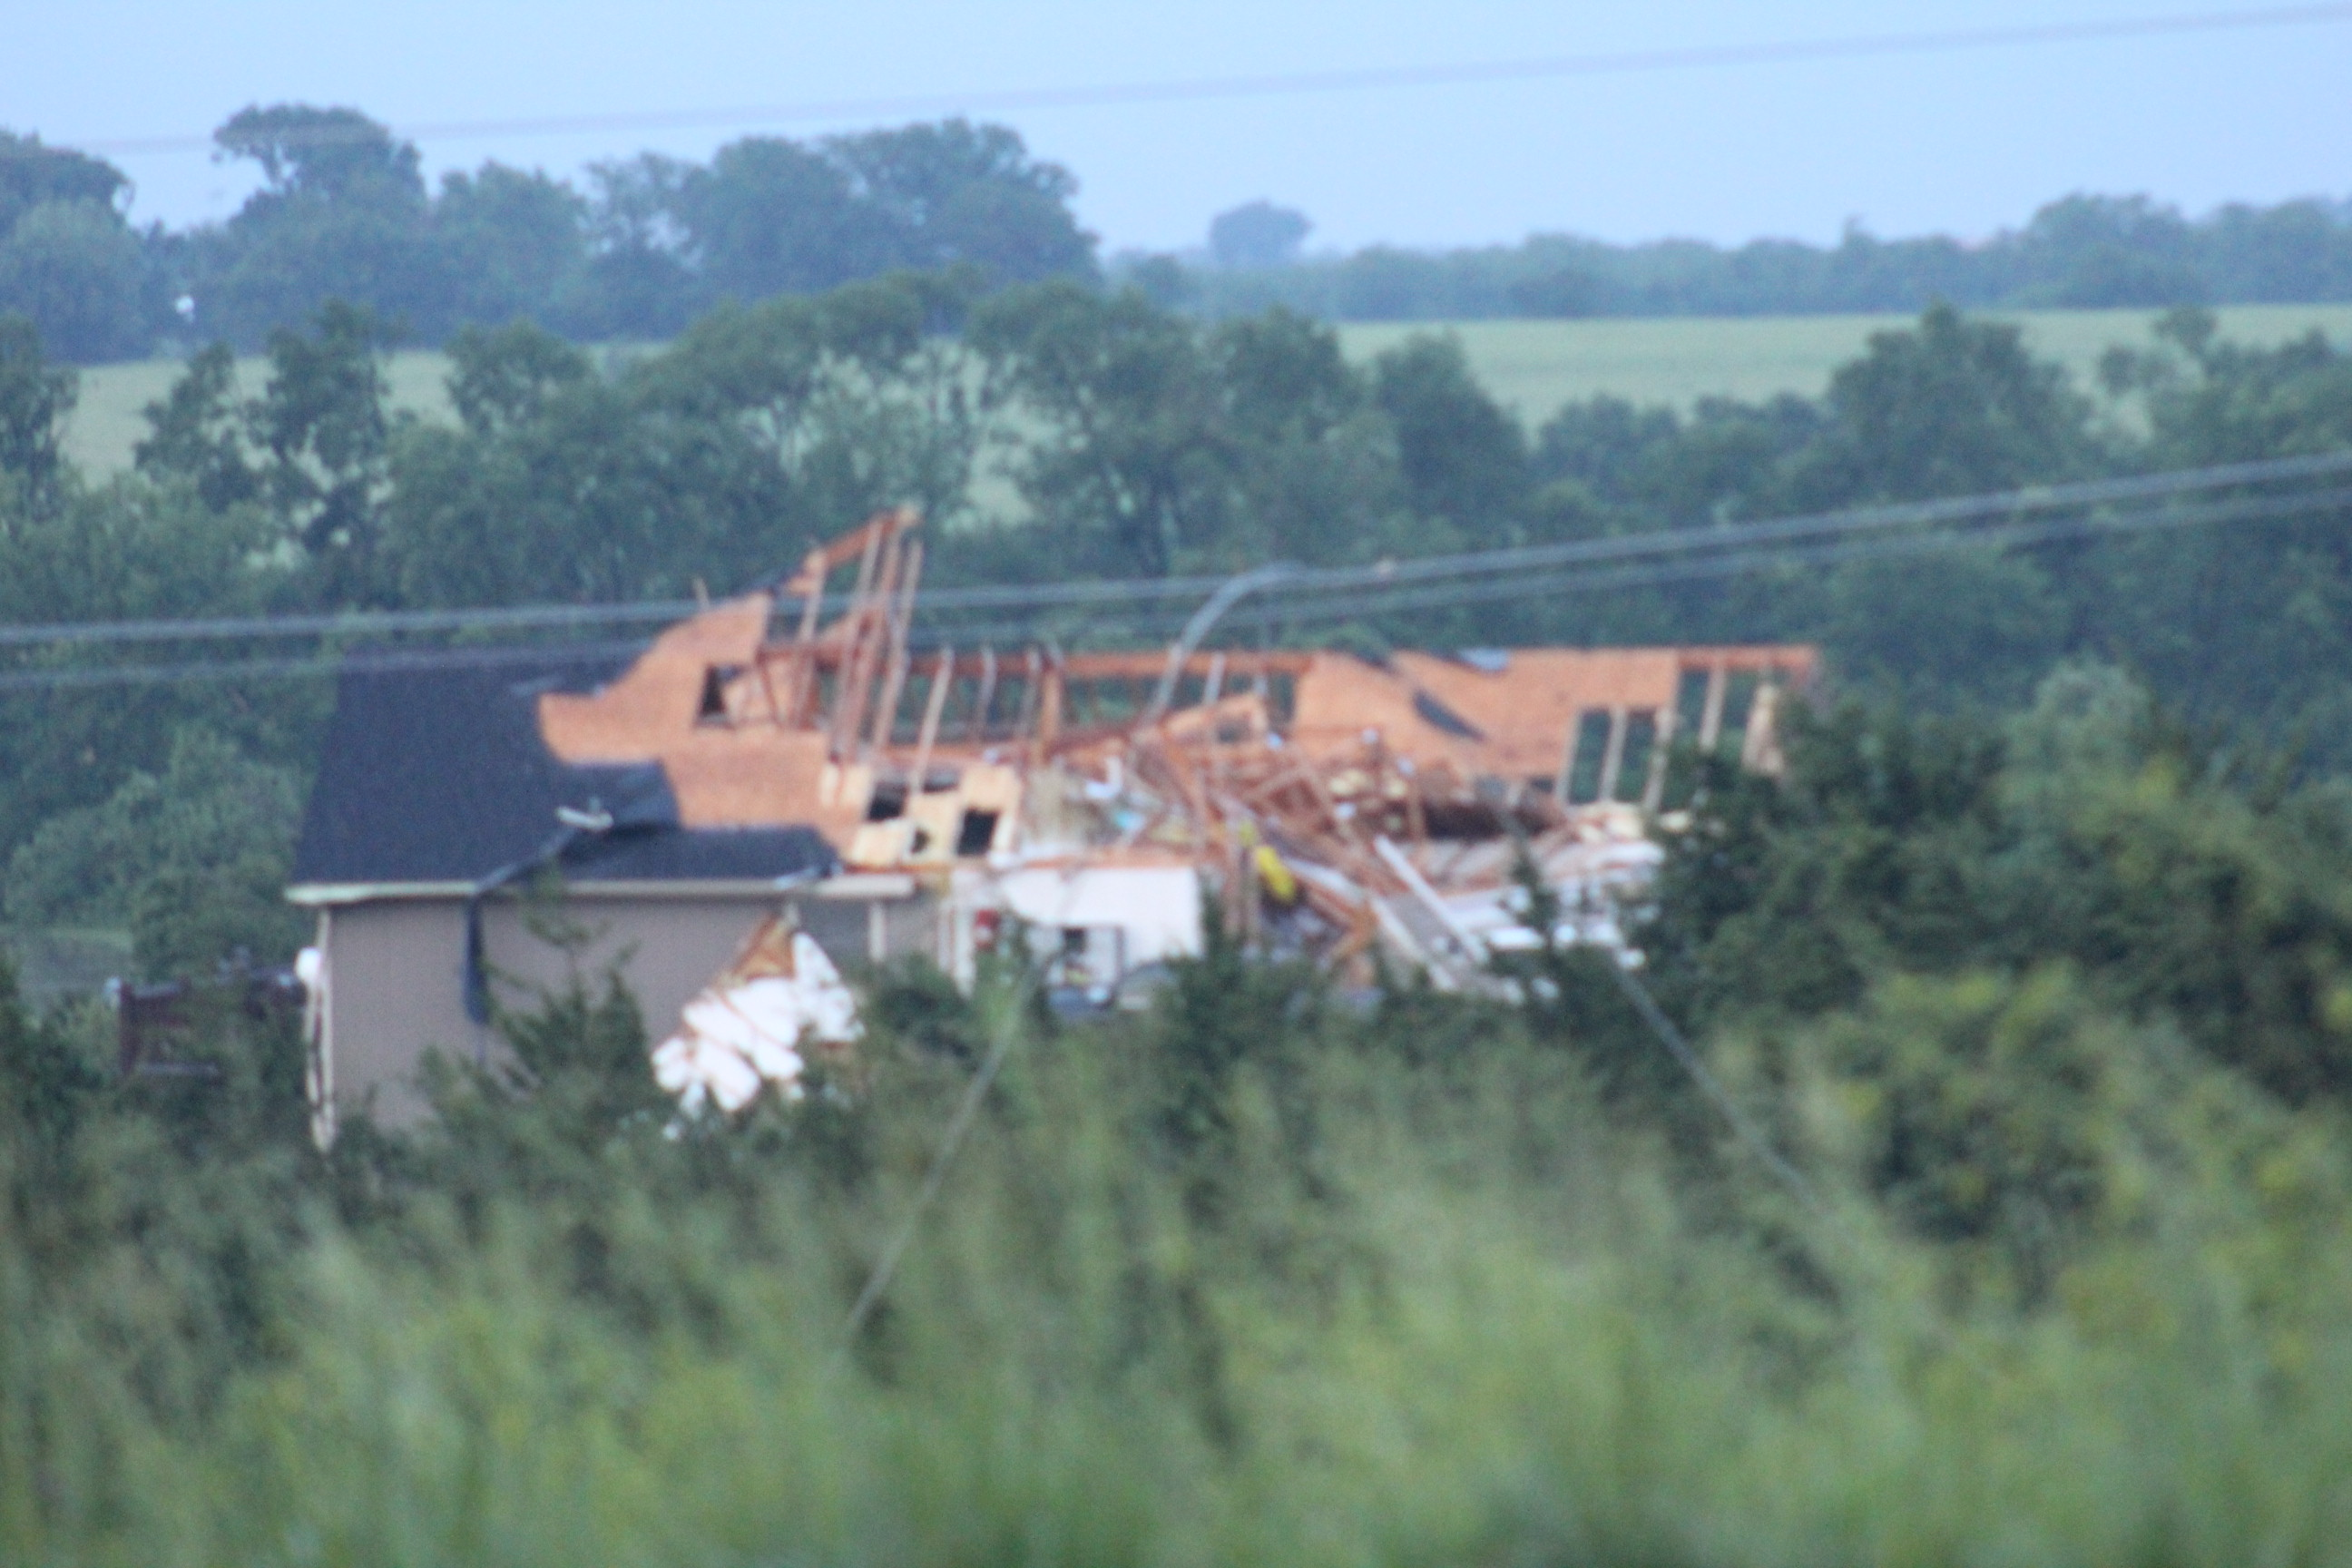 Damaged homes along U.S. Highway 59 south of Lawrence (Photo by J. Schafer)